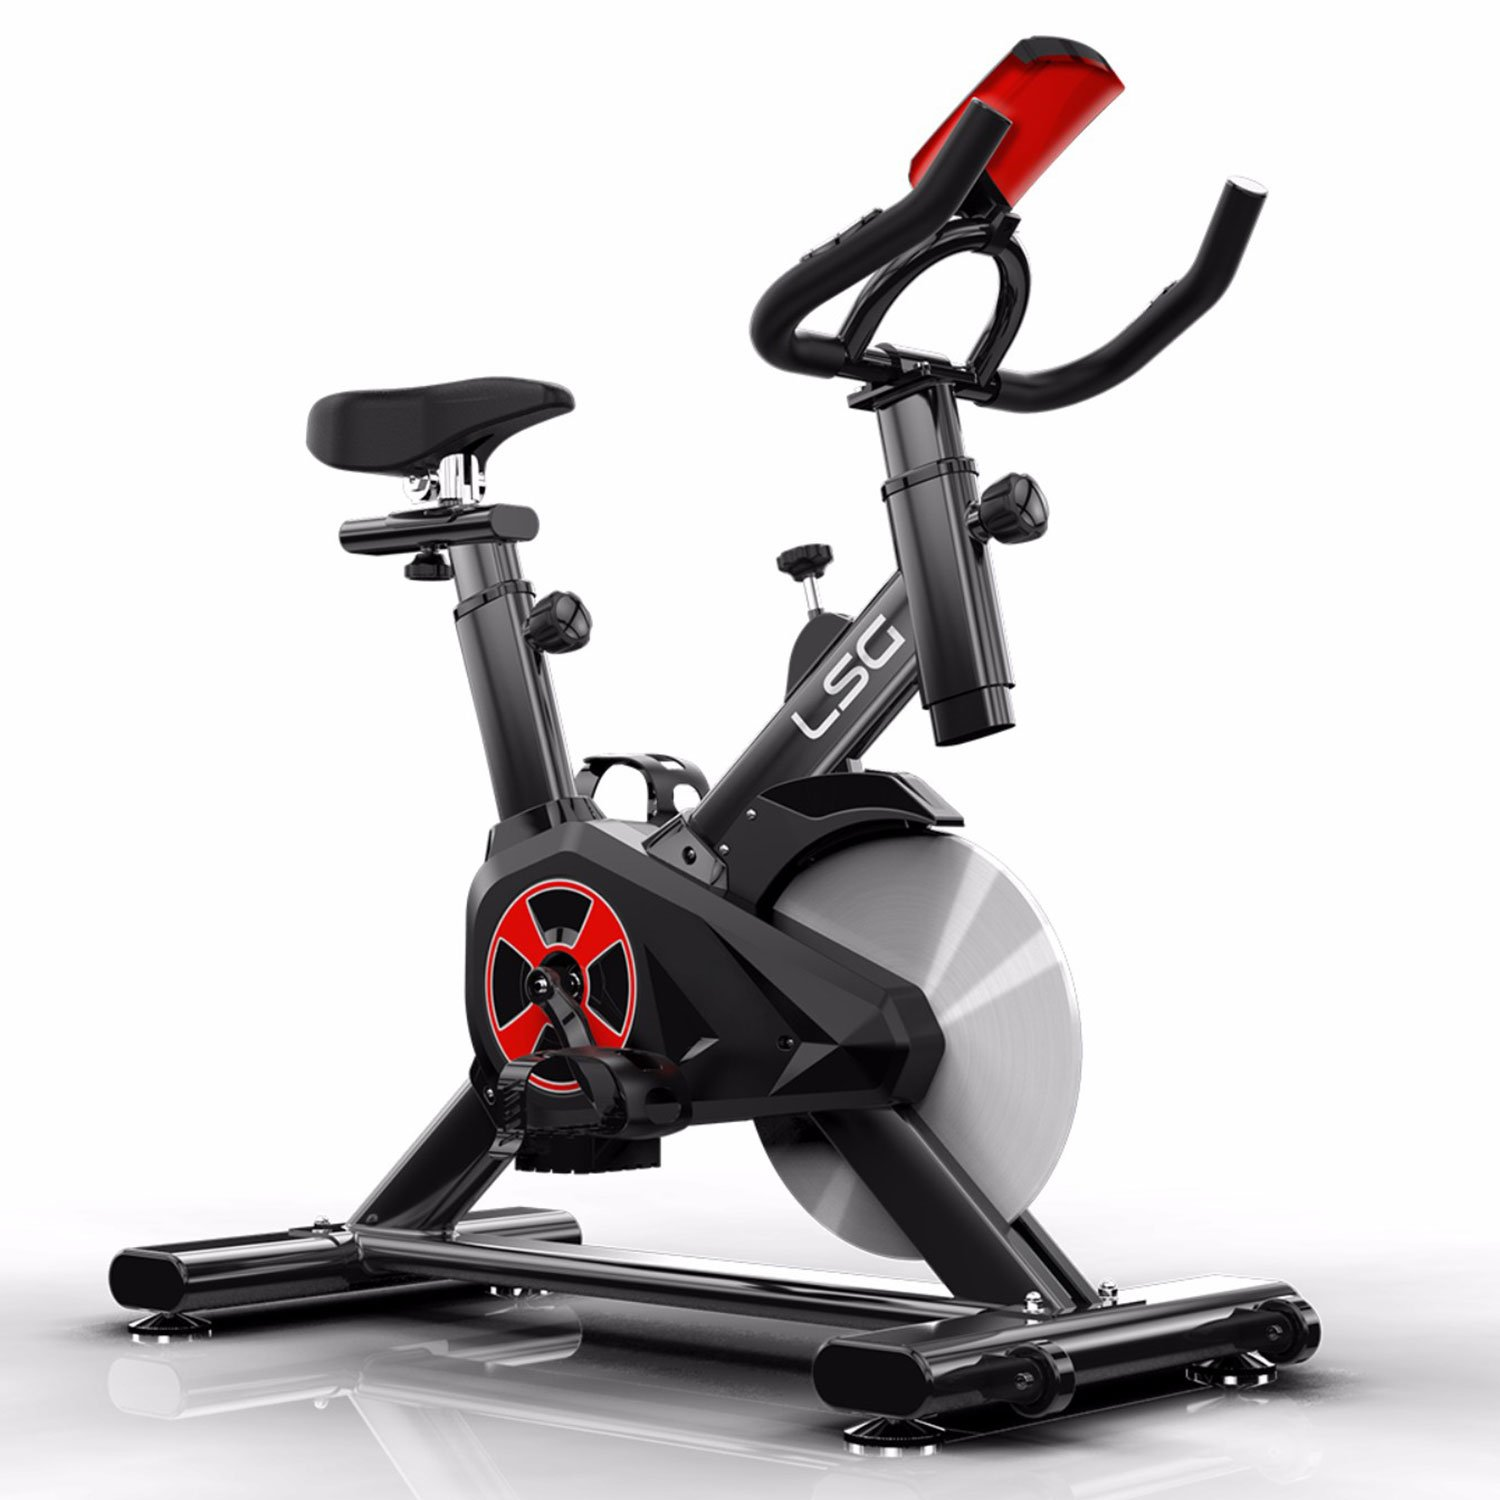 LSG SPG100 Belt Drive Spin Bike